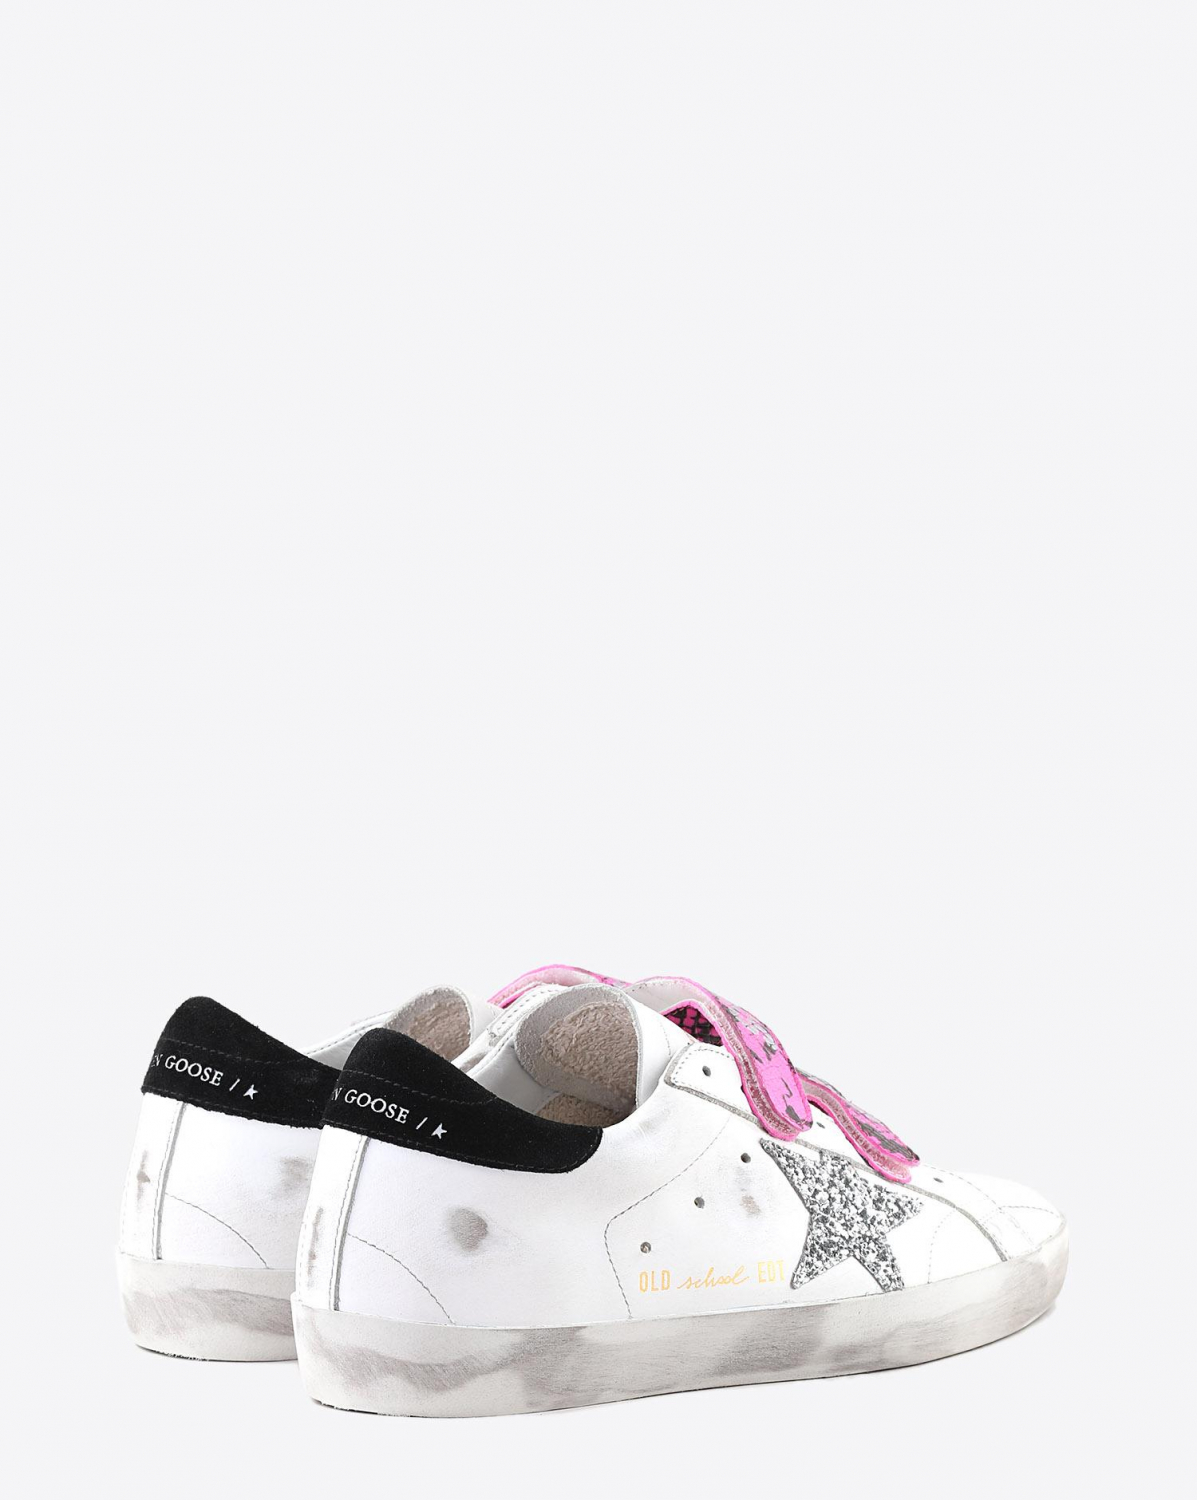 Golden Goose Woman Pré-Collection Sneakers Old School -White Leather - Fuxia Printed